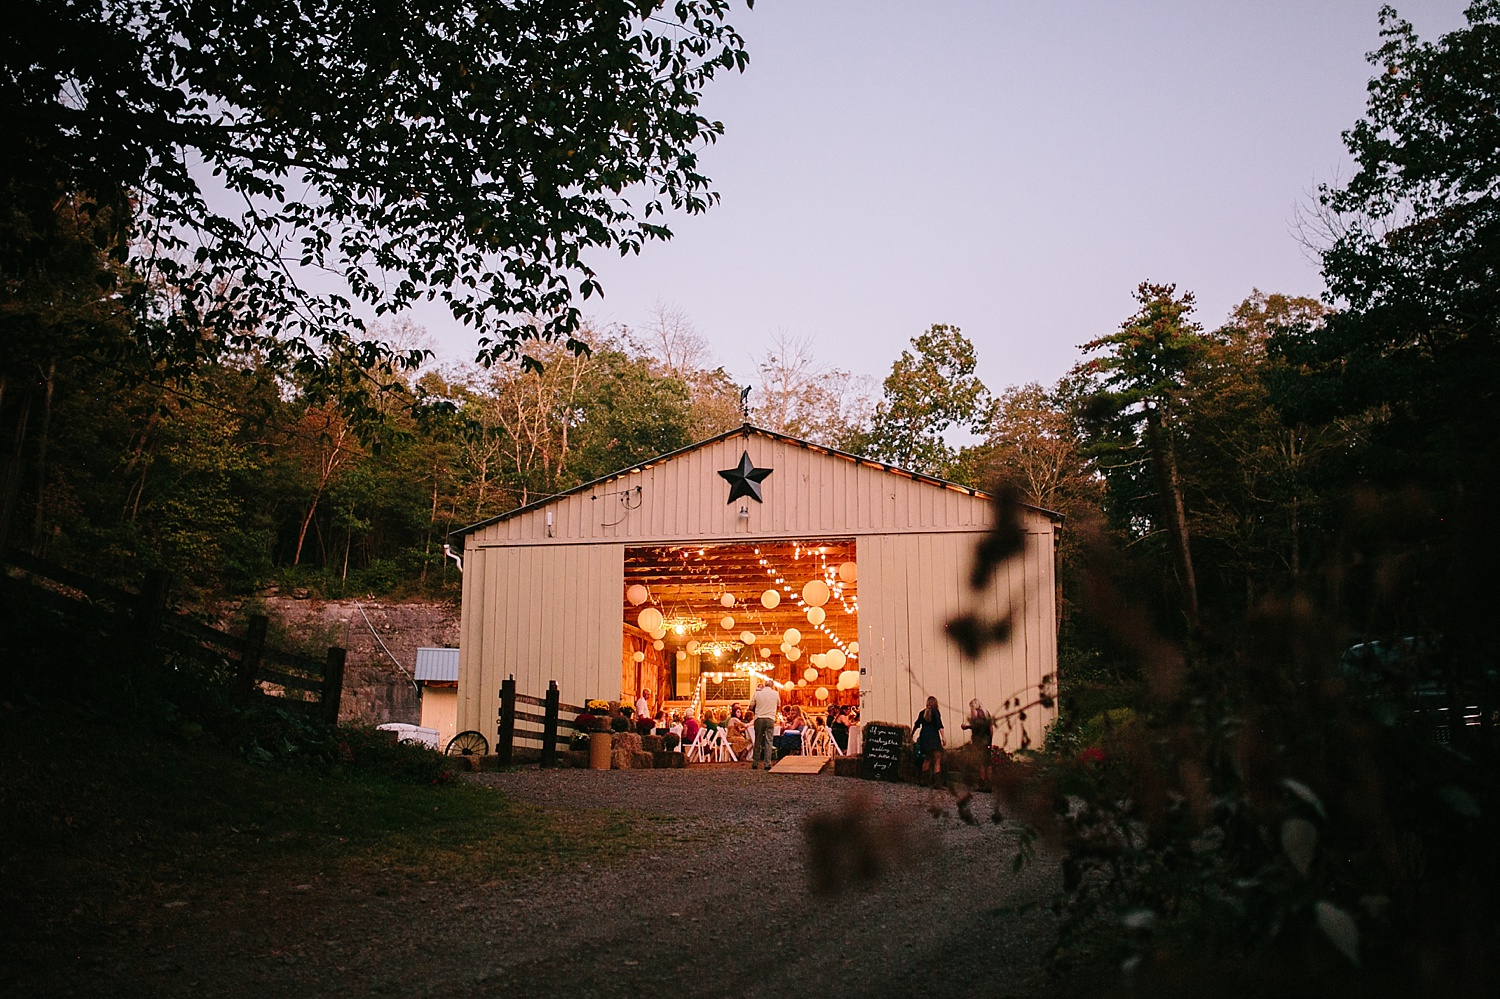 jennyryan_newbeginnings_farmstead_upstatenewyork_wedding_image128.jpg